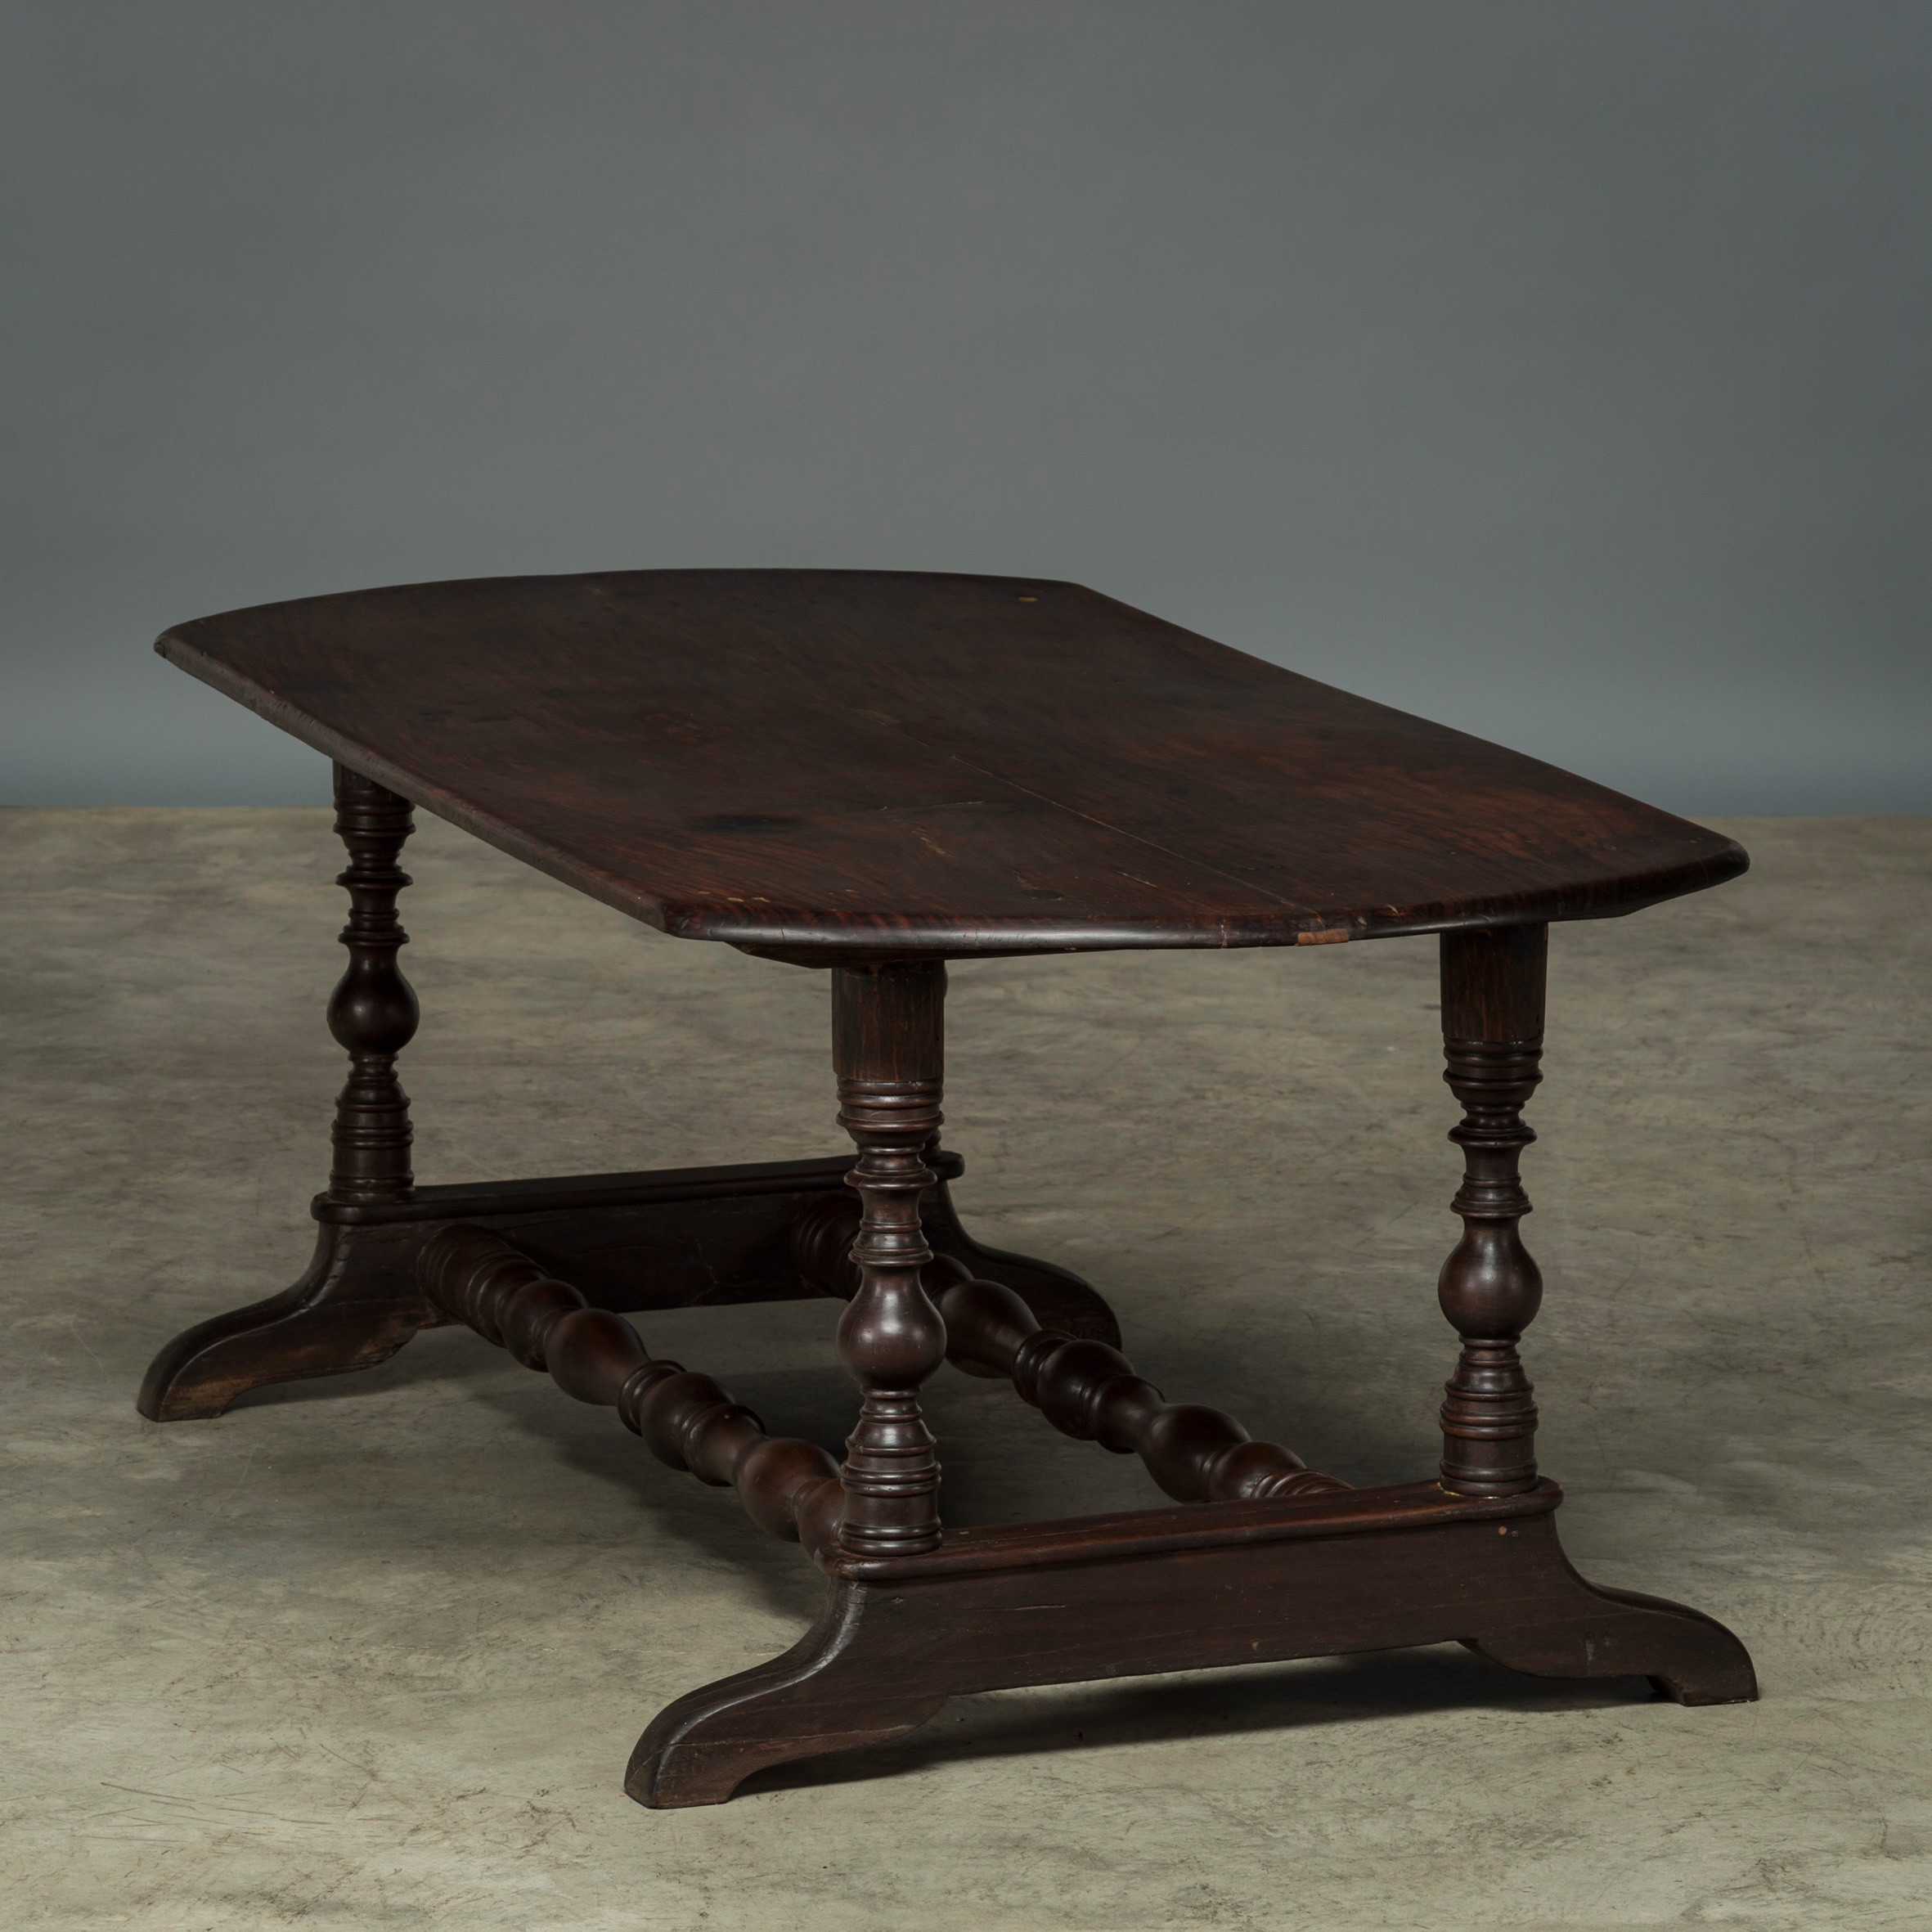 Long table in Narra hardwood, Baroque style